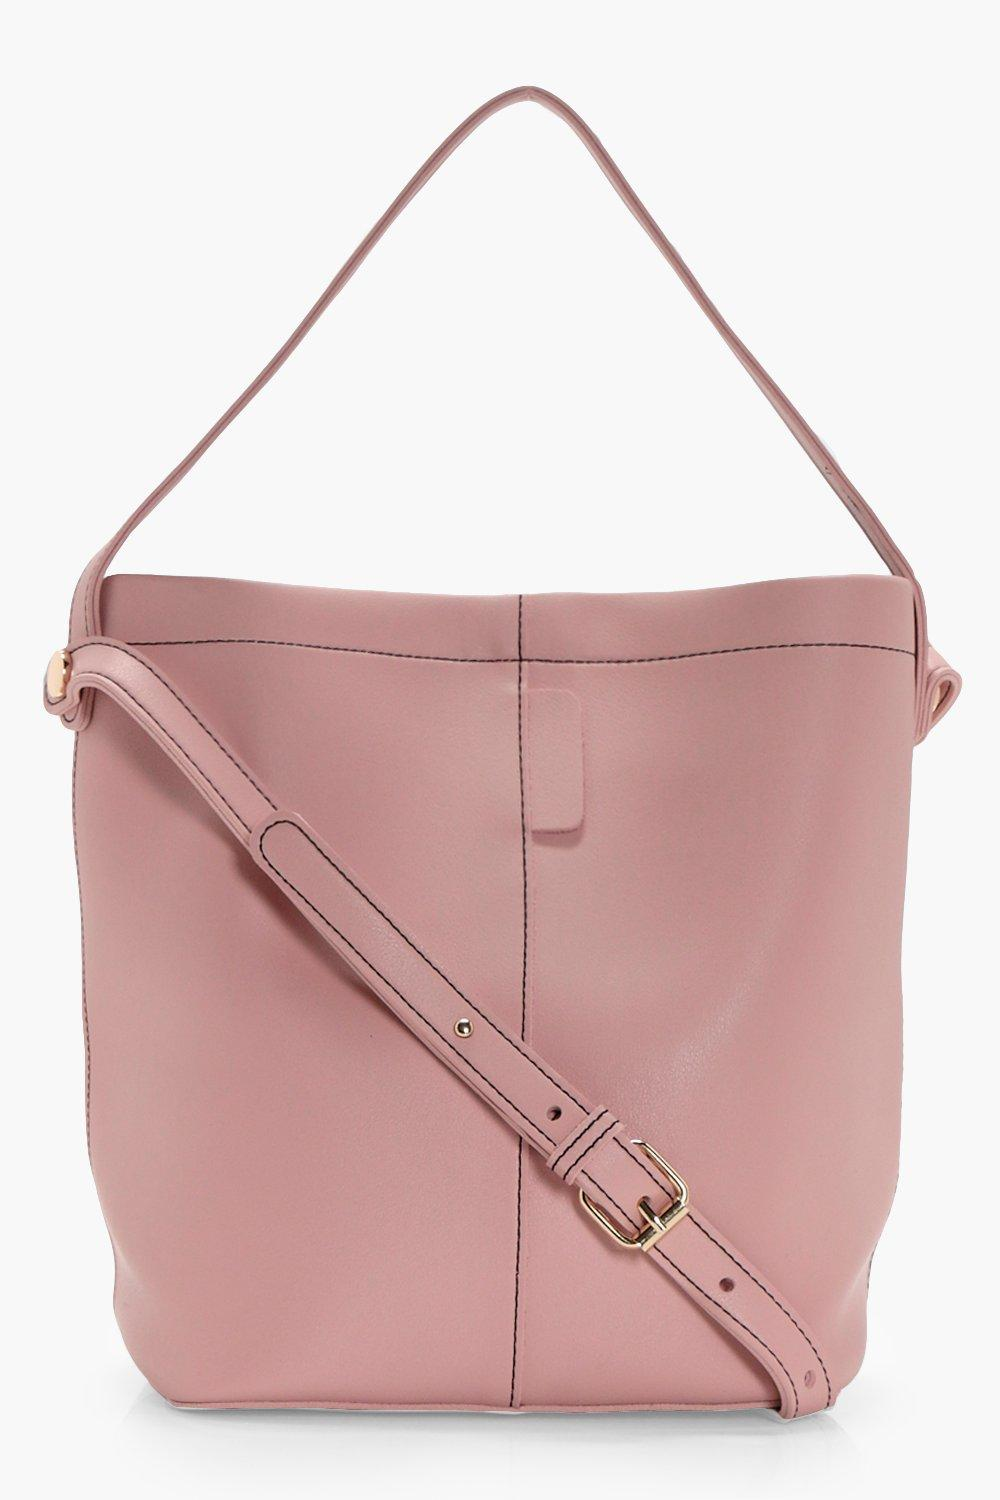 Structured Bucket Bag - nude - Lottie Structured B